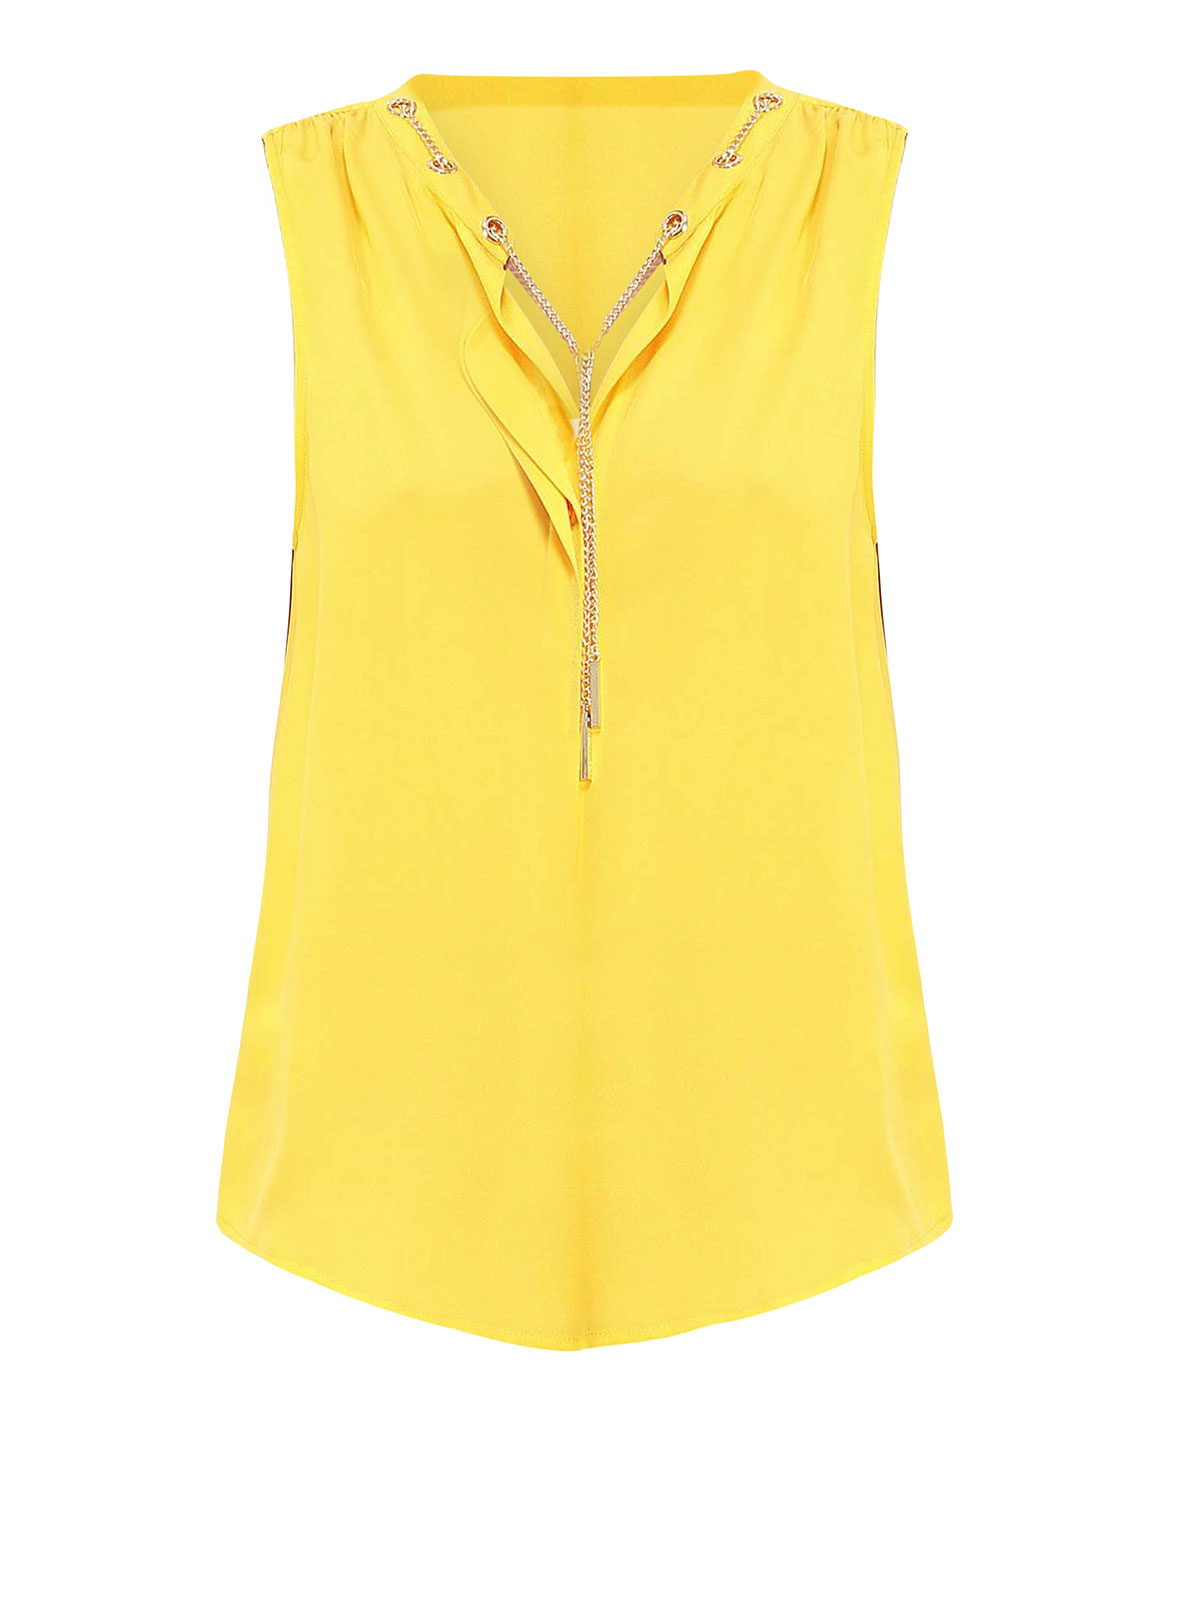 87ccb20c45ad9 Michael Michael Kors - Silk top with chain detail - Tops   Tank tops ...